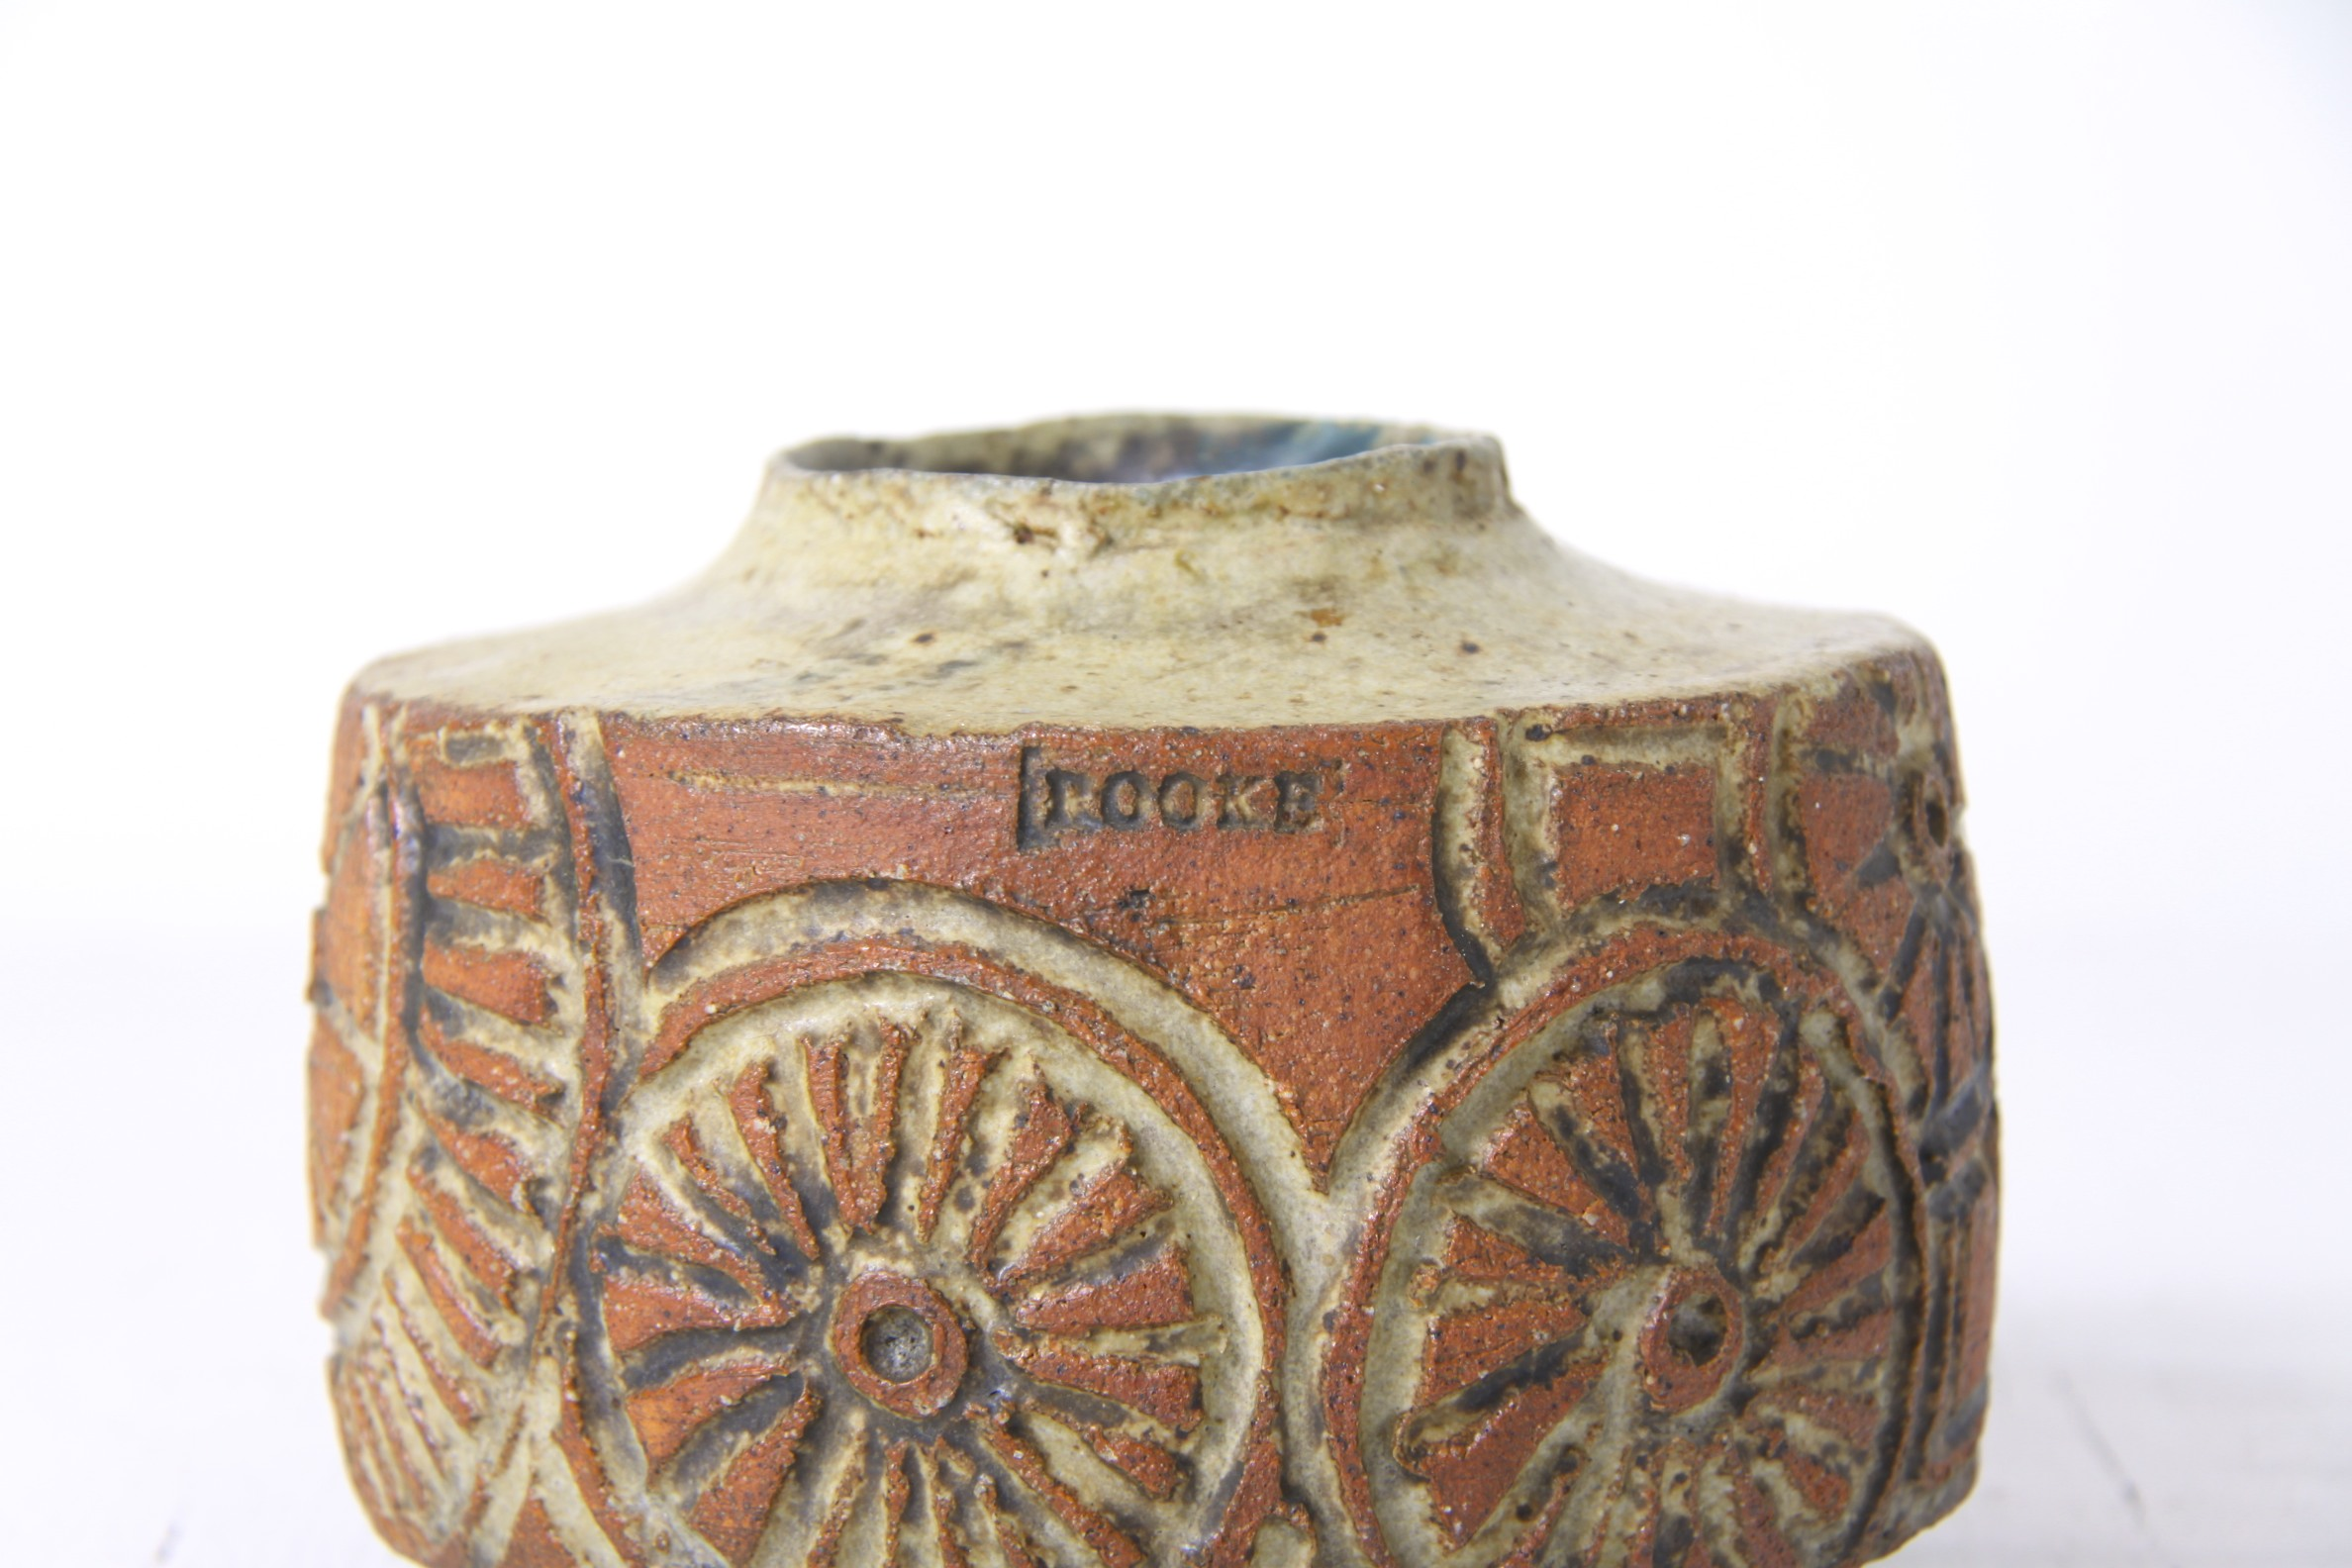 Studio pottery afterglow retro this is a stunning stoneware studio pottery vase by bernard rooke england circa 1960s 70s reviewsmspy